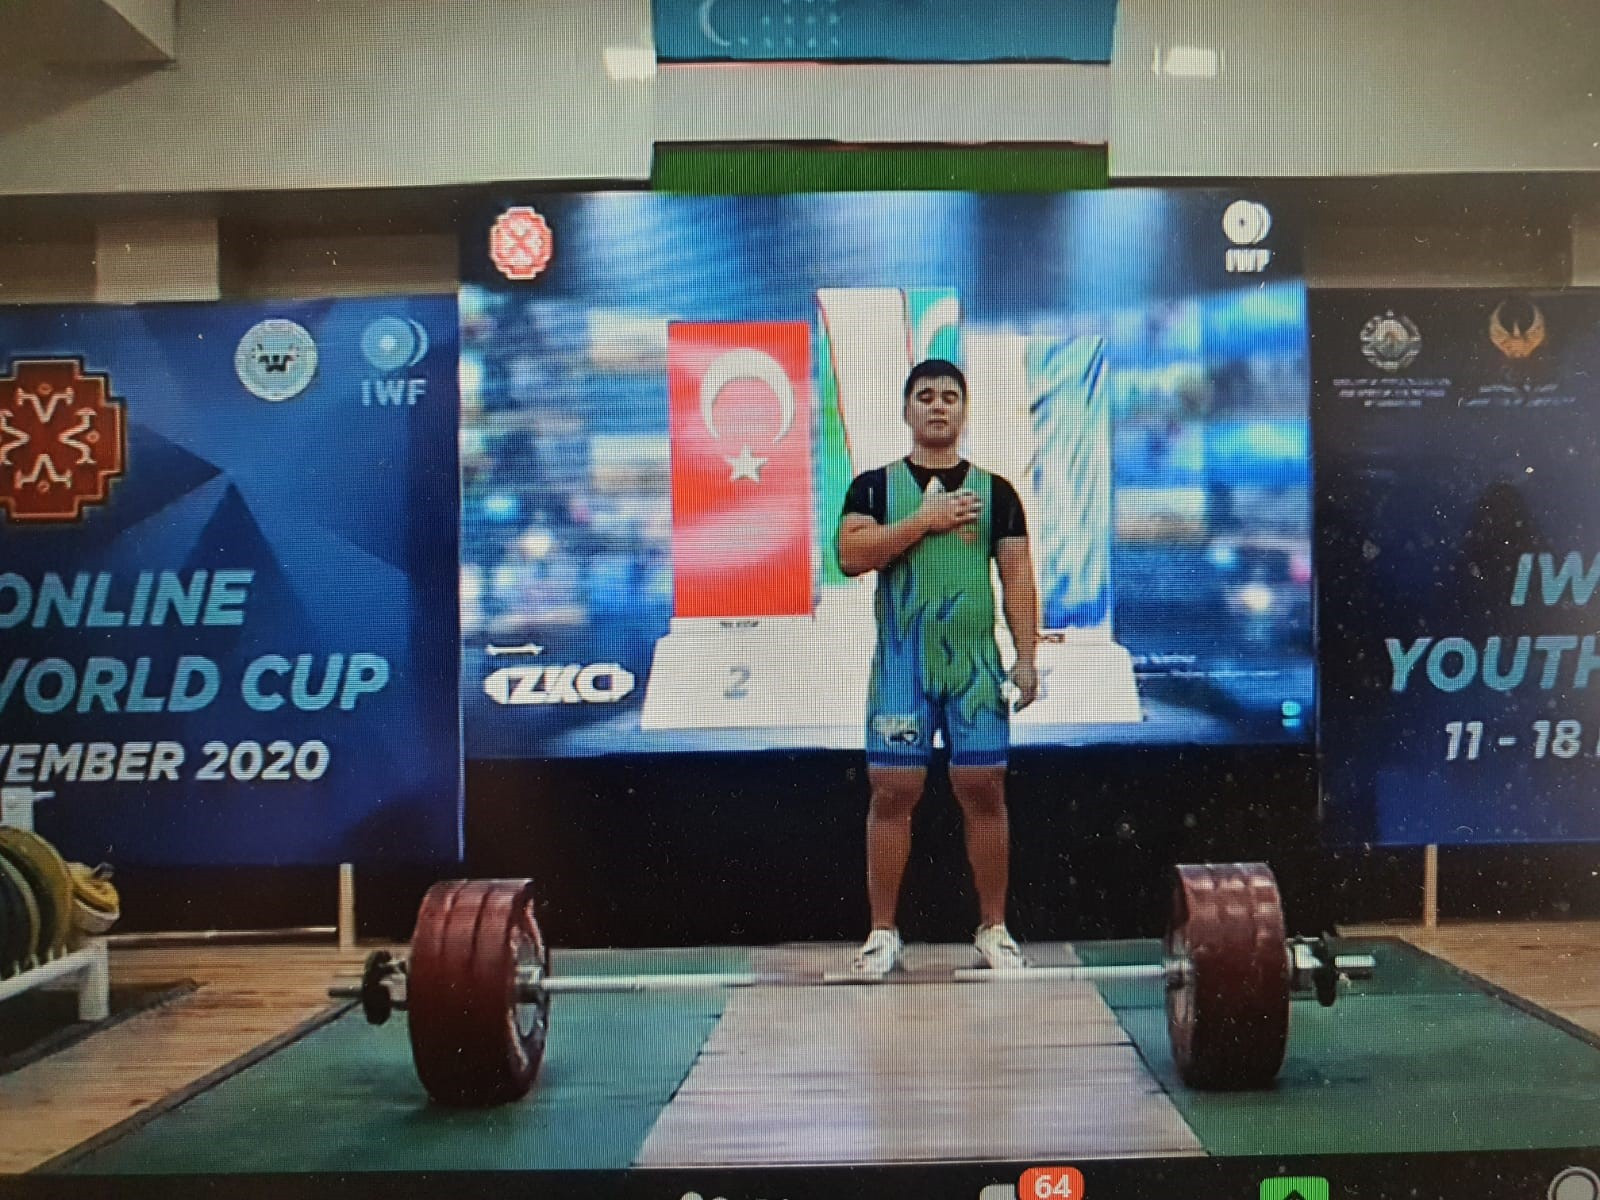 While numerous online weightlifting contests have been staged during the pandemic, OWF officials expressed concerns that connectivity problems could hamper a virtual Congress ©IWF